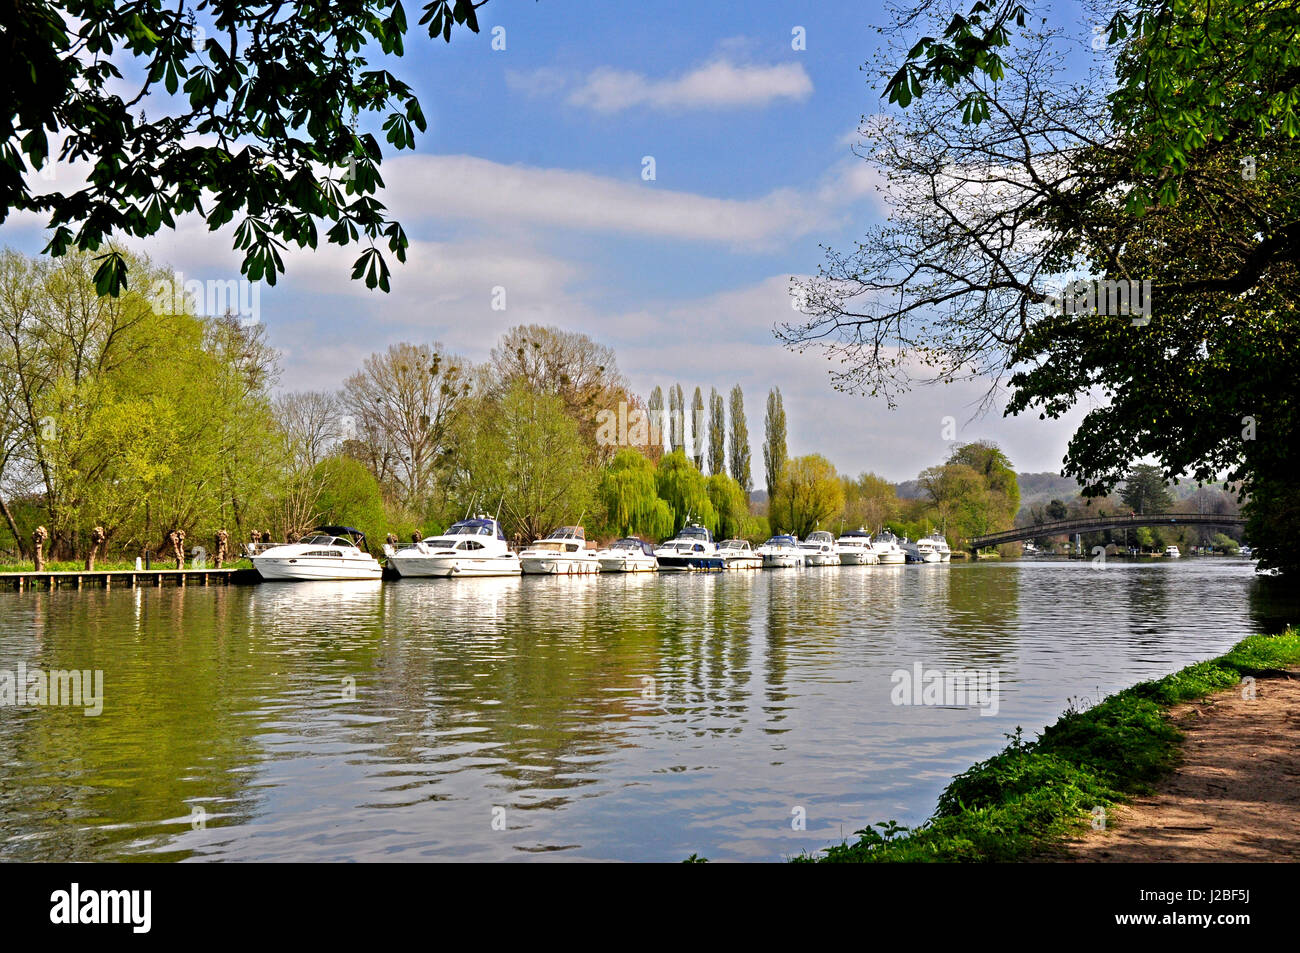 Rver cruisers - reflections - framed by trees - sunlight - blue sky - scenic view - river Thames - Hurley - Stock Image